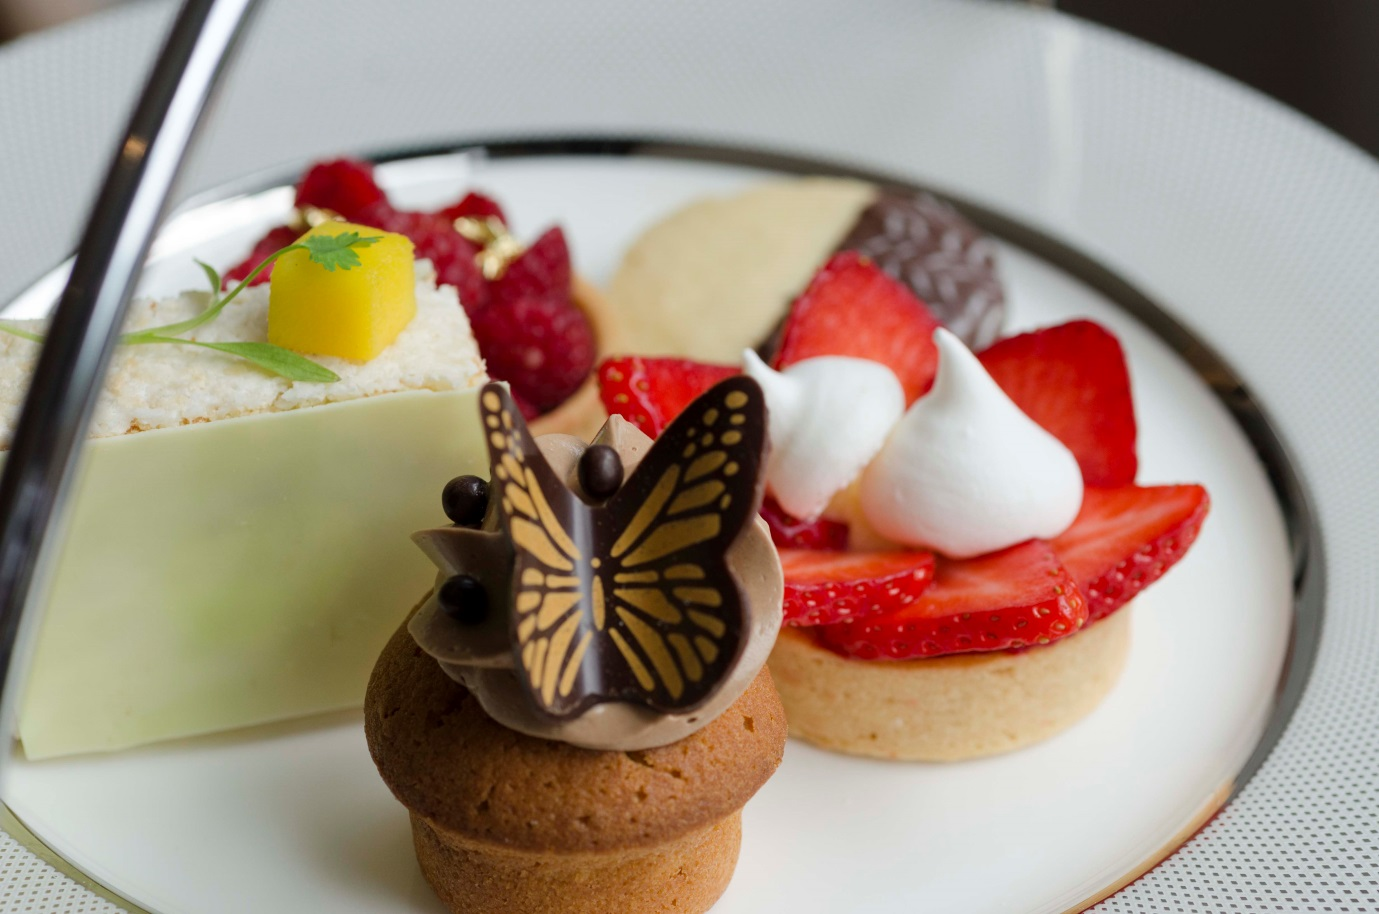 Afternoon Tea at The Athenaeum